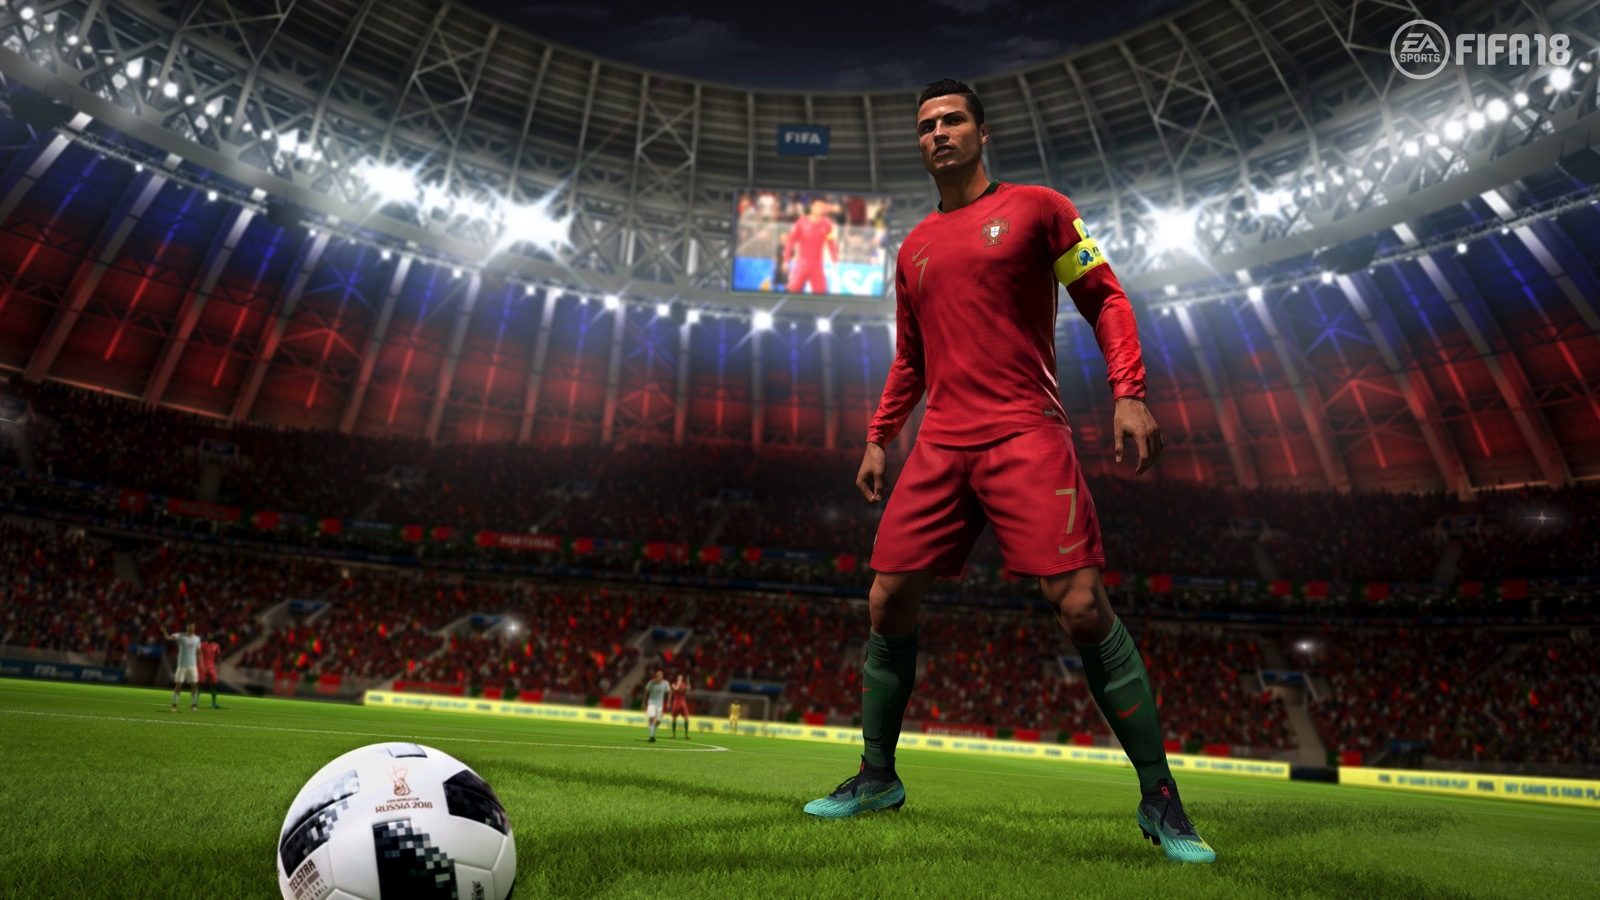 Belgian Government Launches Criminal Investigation Into EA Over